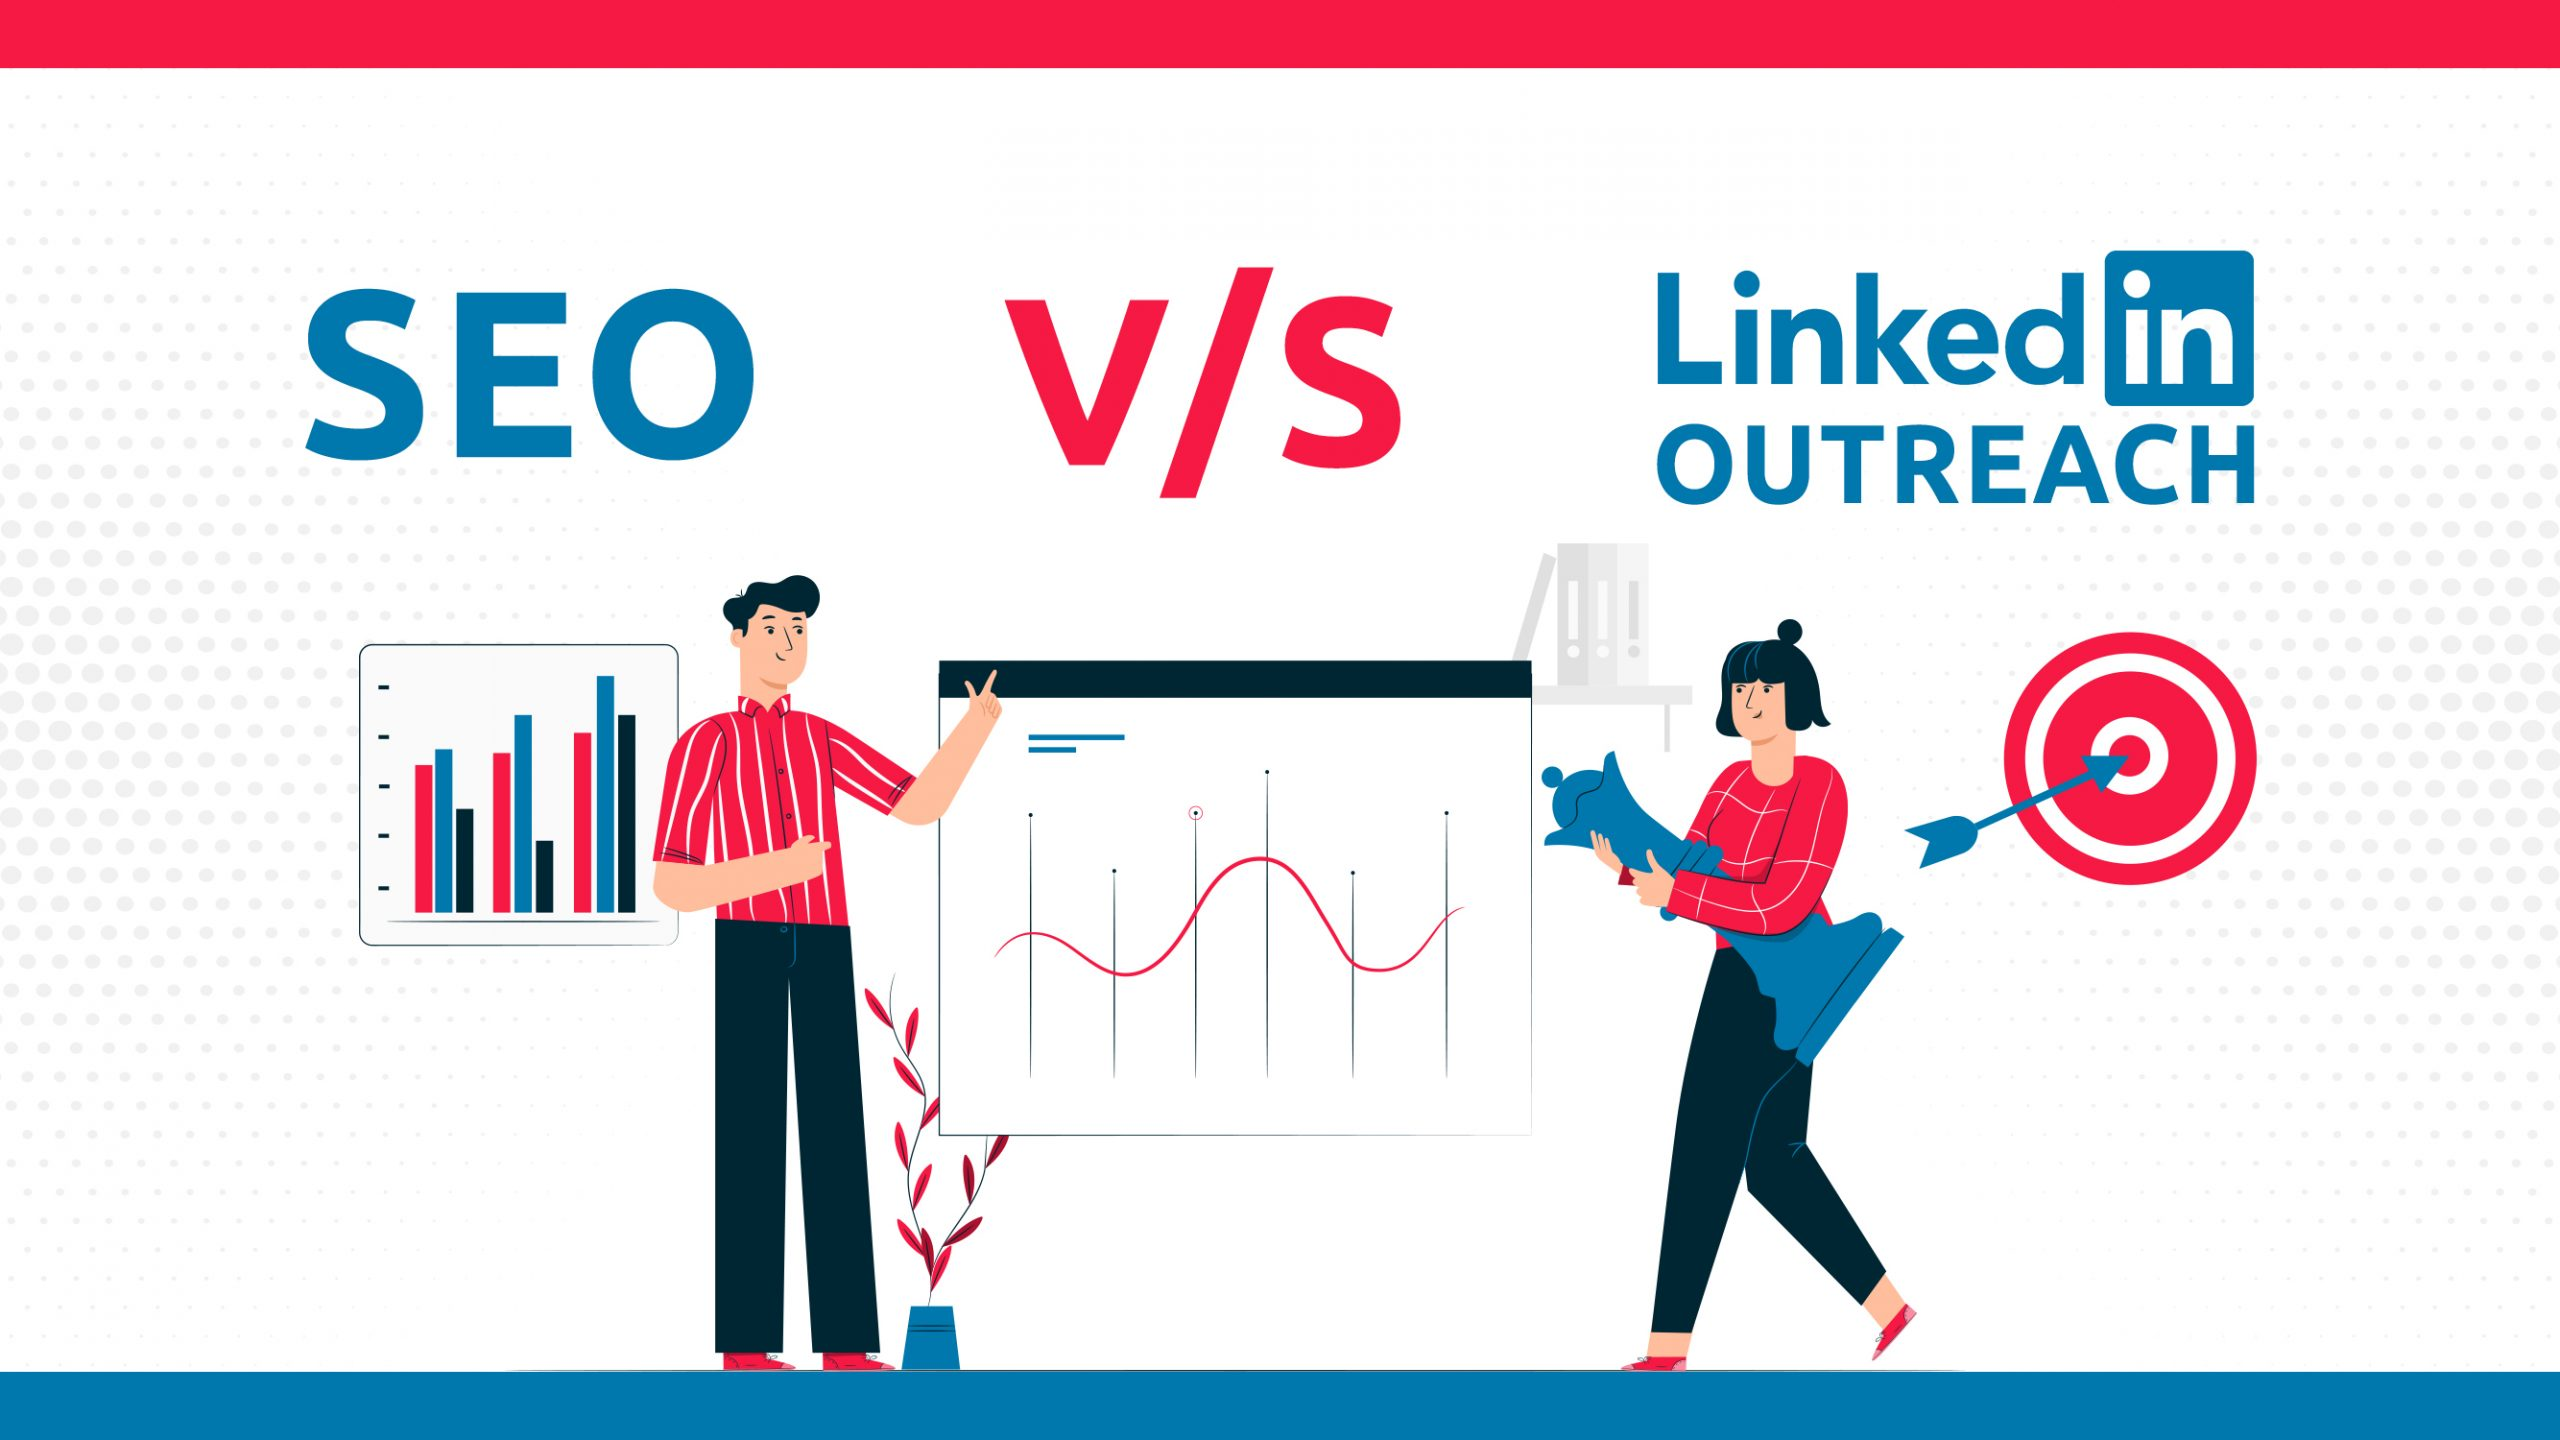 SEO Vs. LinkedIn Outreach: Which One Wins?